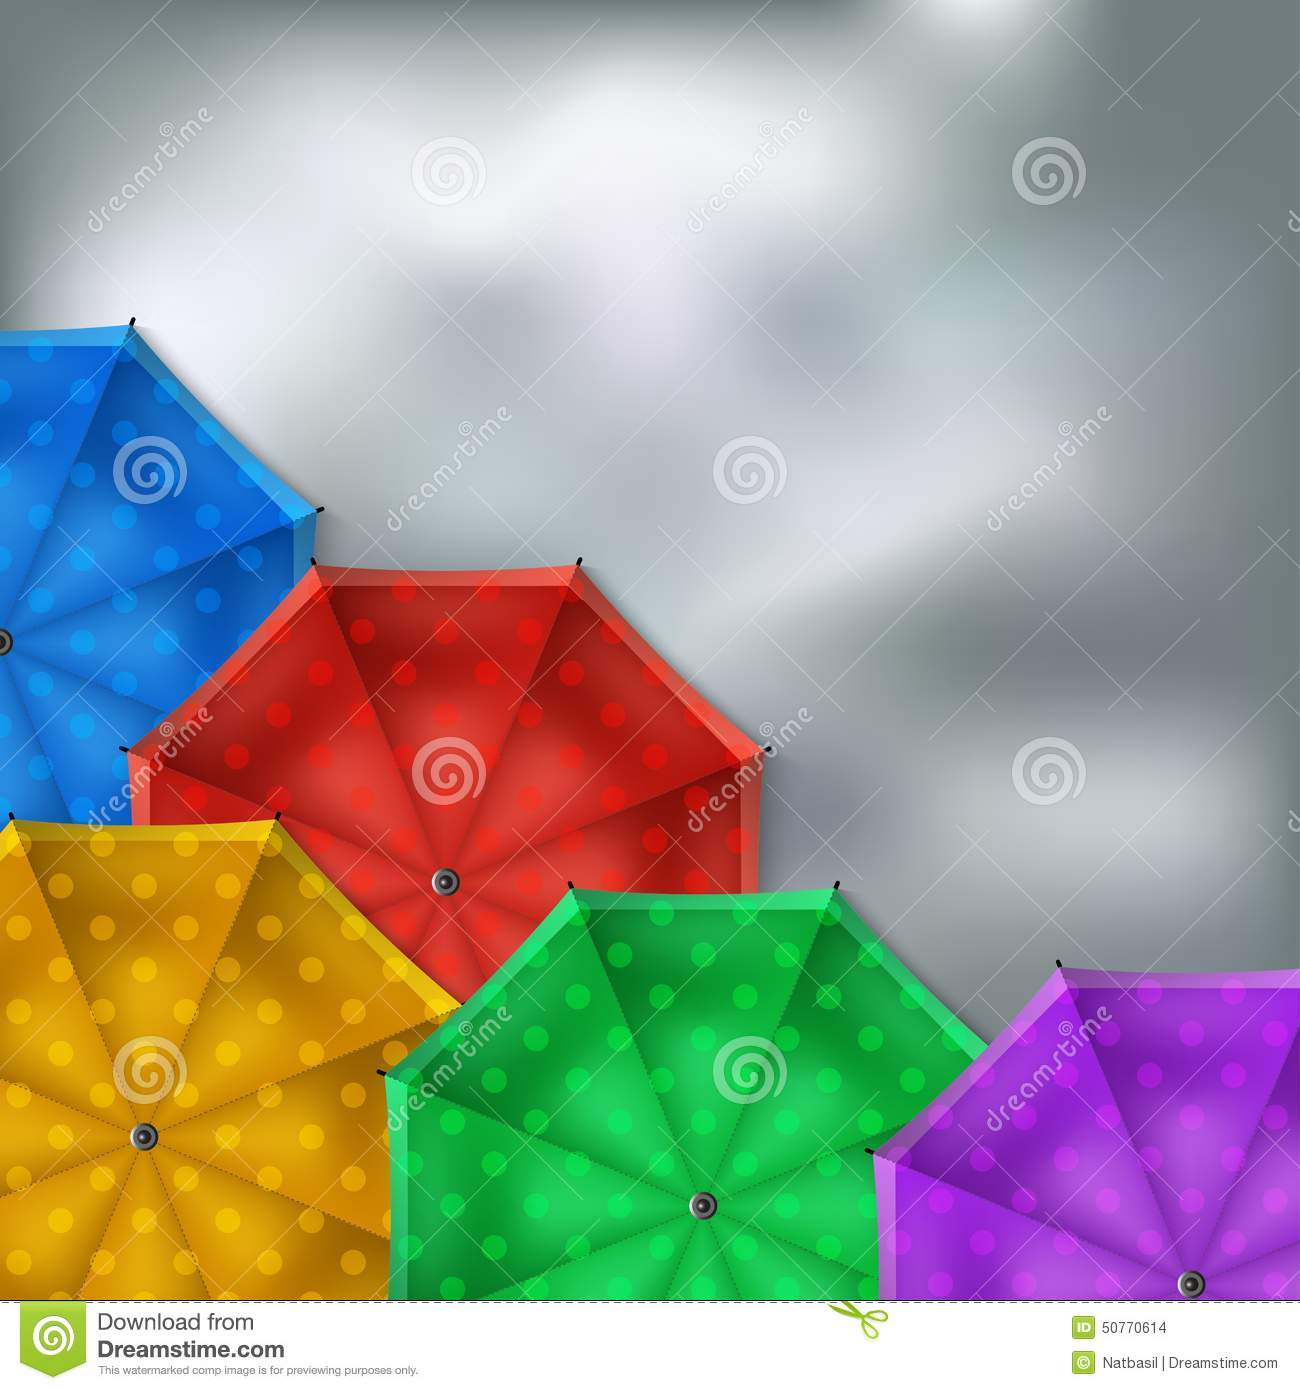 Colored Umbrellas Background Stock Vector - Illustration ...